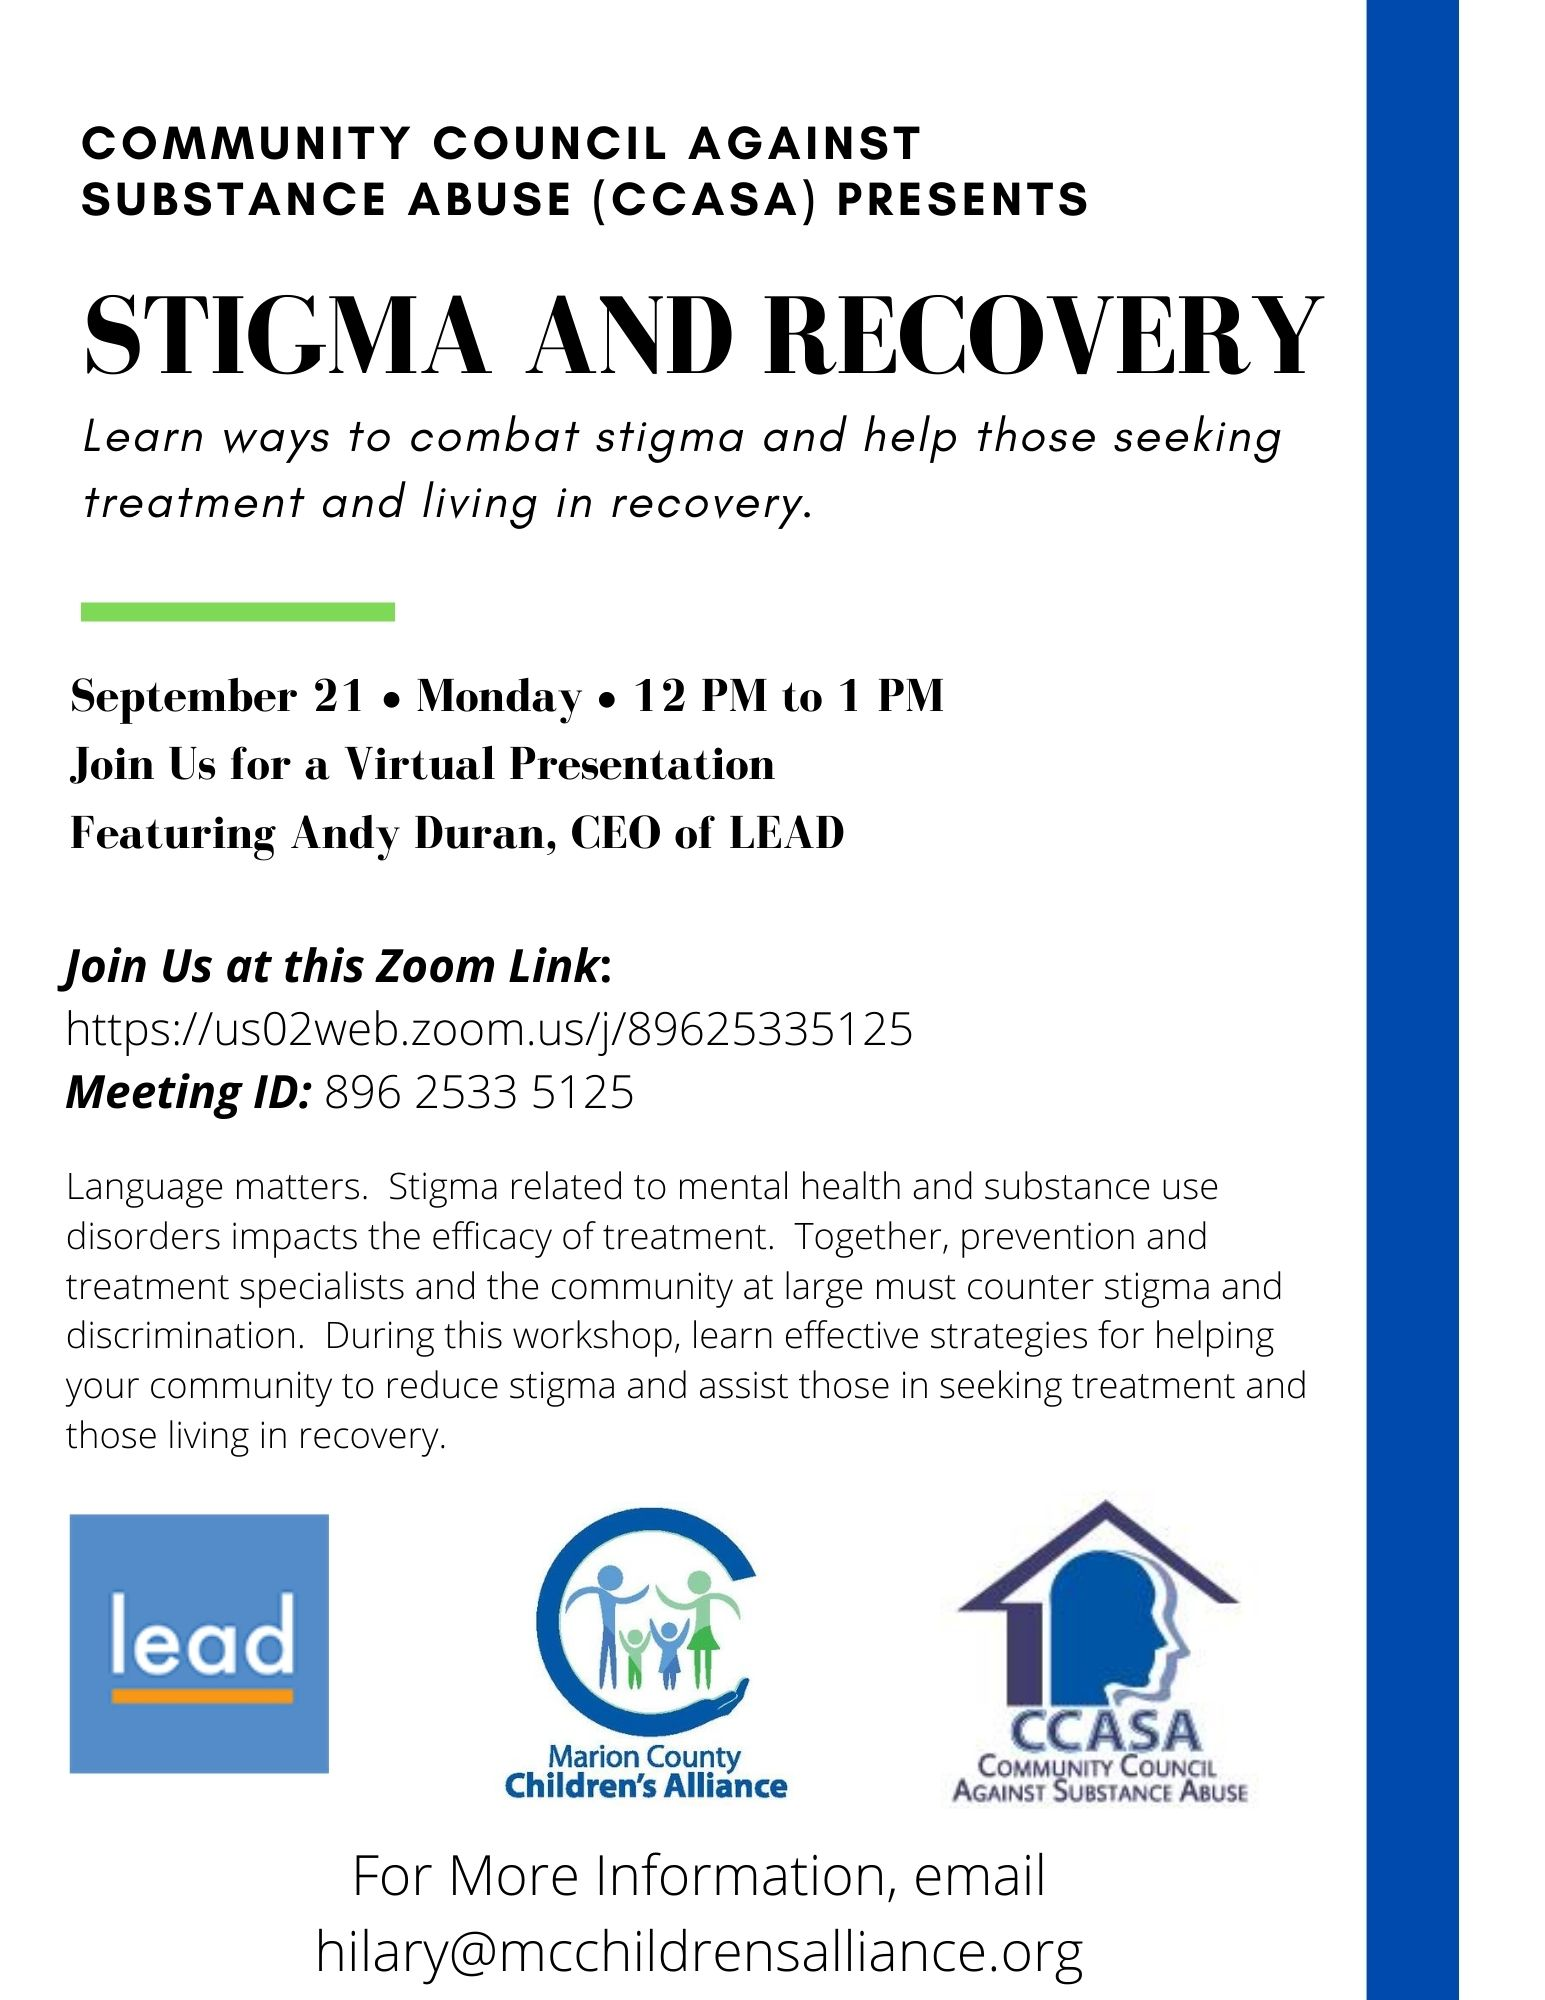 September 2020 CCASA Flyer - Recovery and Stigma